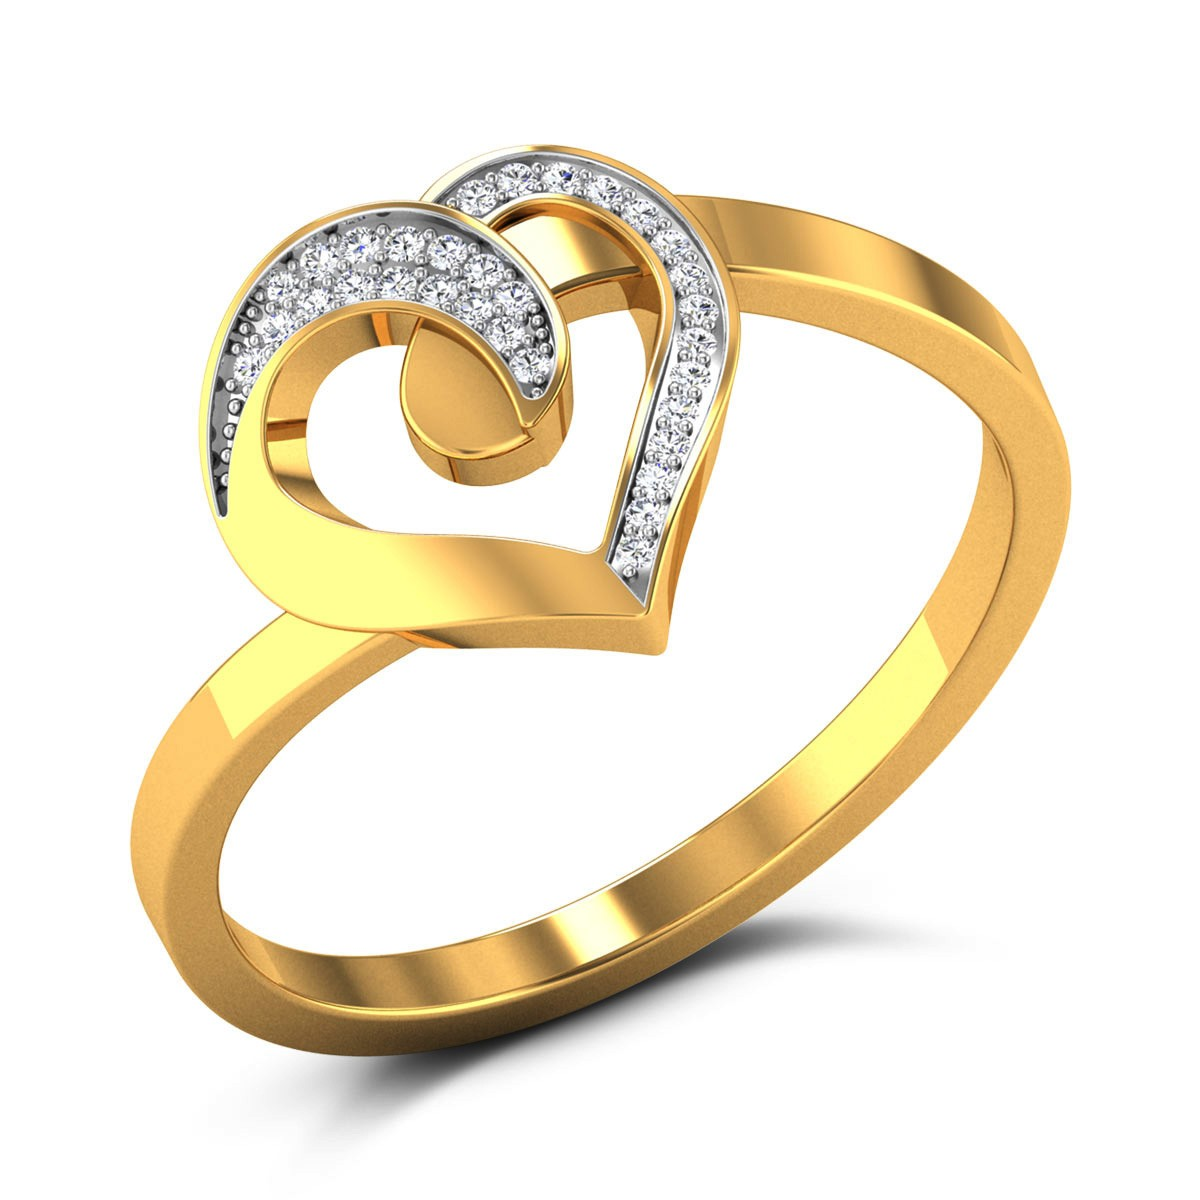 Buy Petina Aswirl Hearts Diamond Ring in 3.65 Grams Gold Online